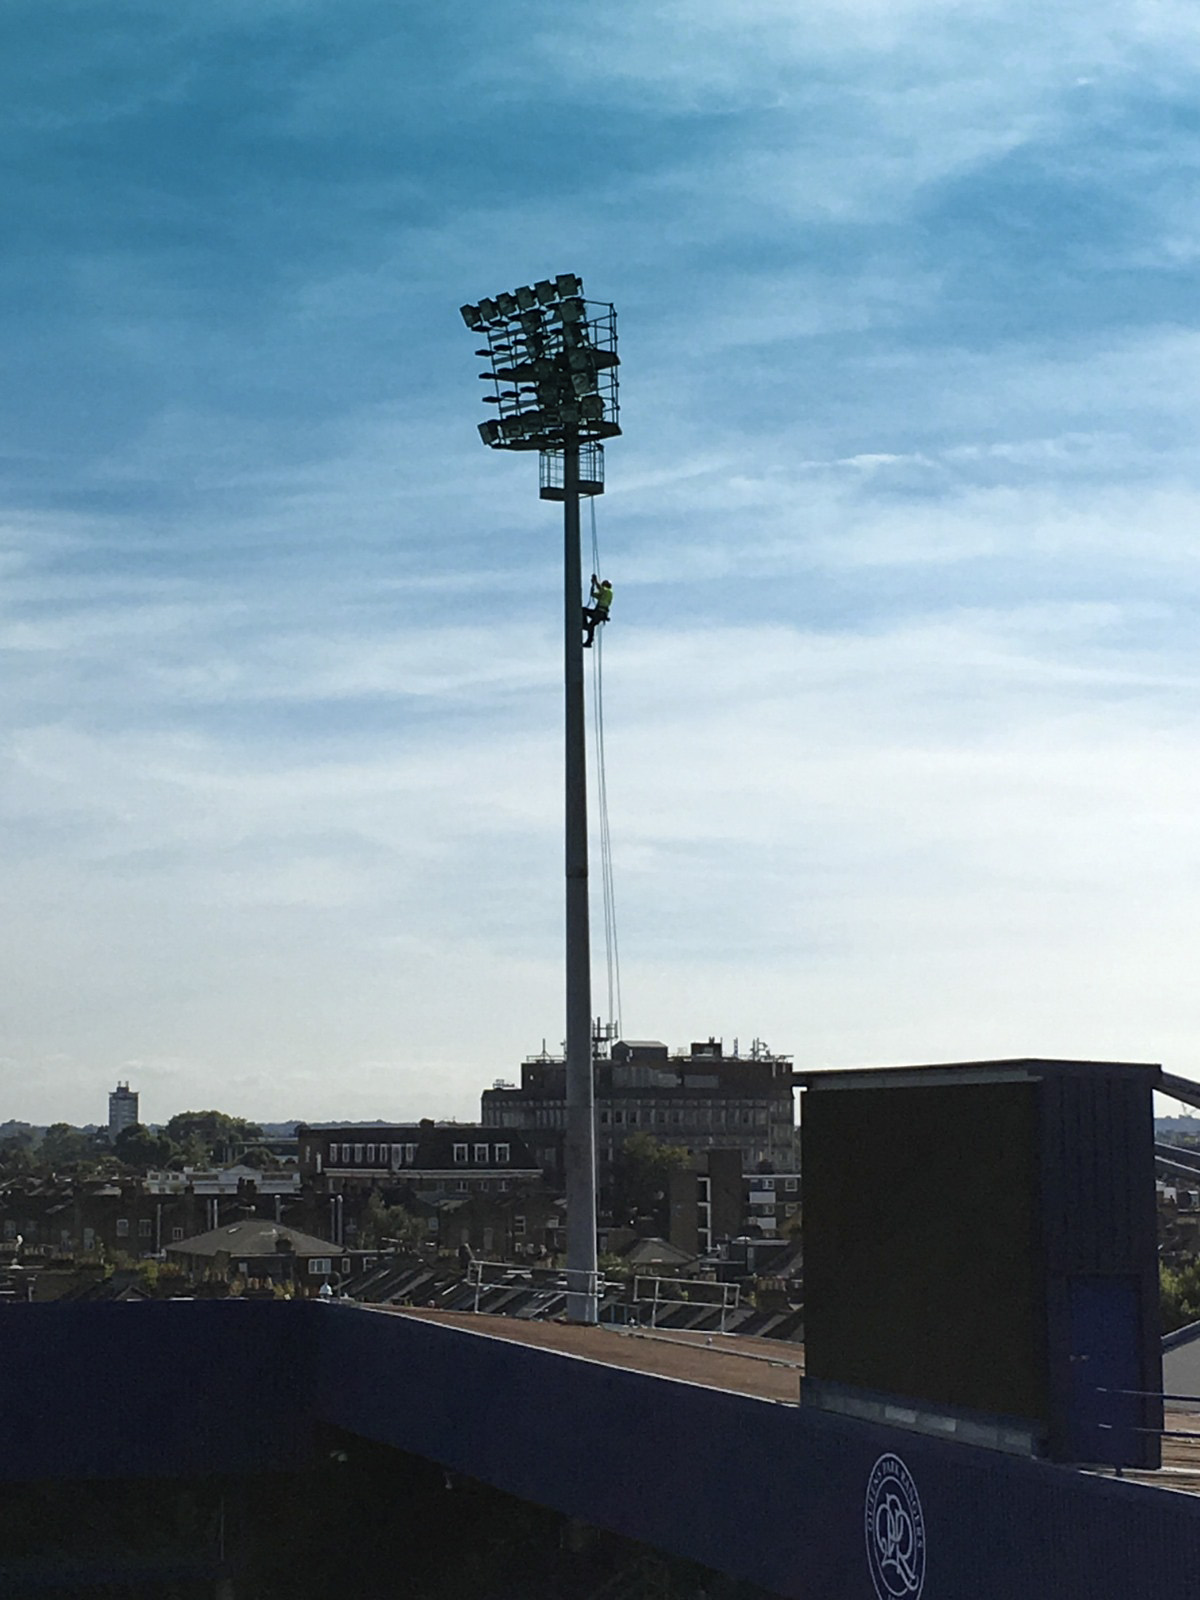 Queens Park Rangers Lighting Tower